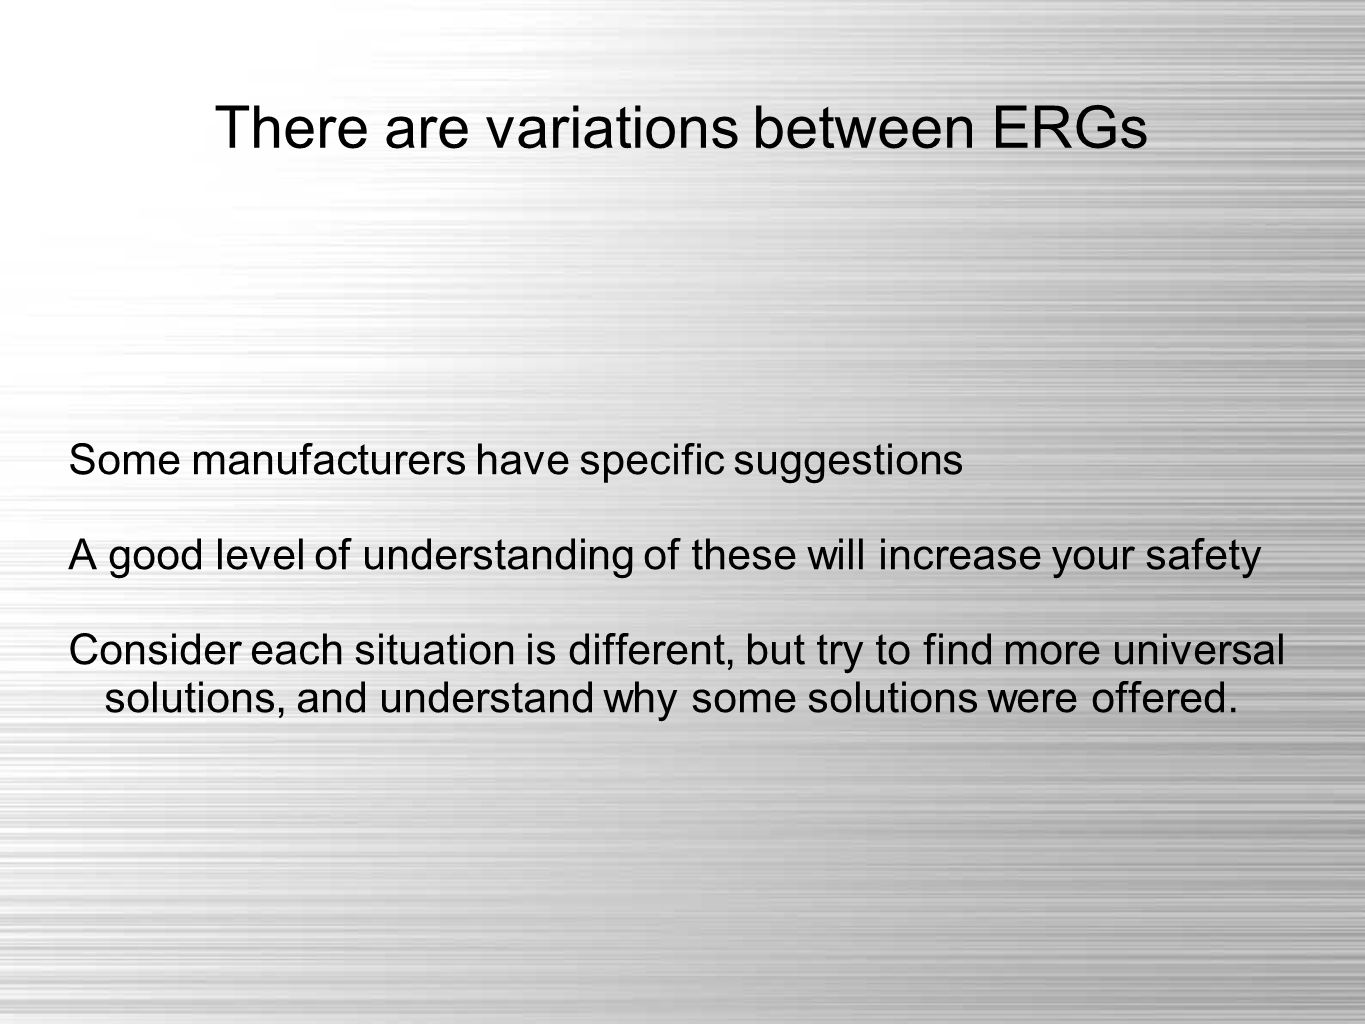 There are variations between ERGs Some manufacturers have specific suggestions A good level of understanding of these will increase your safety Consider each situation is different, but try to find more universal solutions, and understand why some solutions were offered.